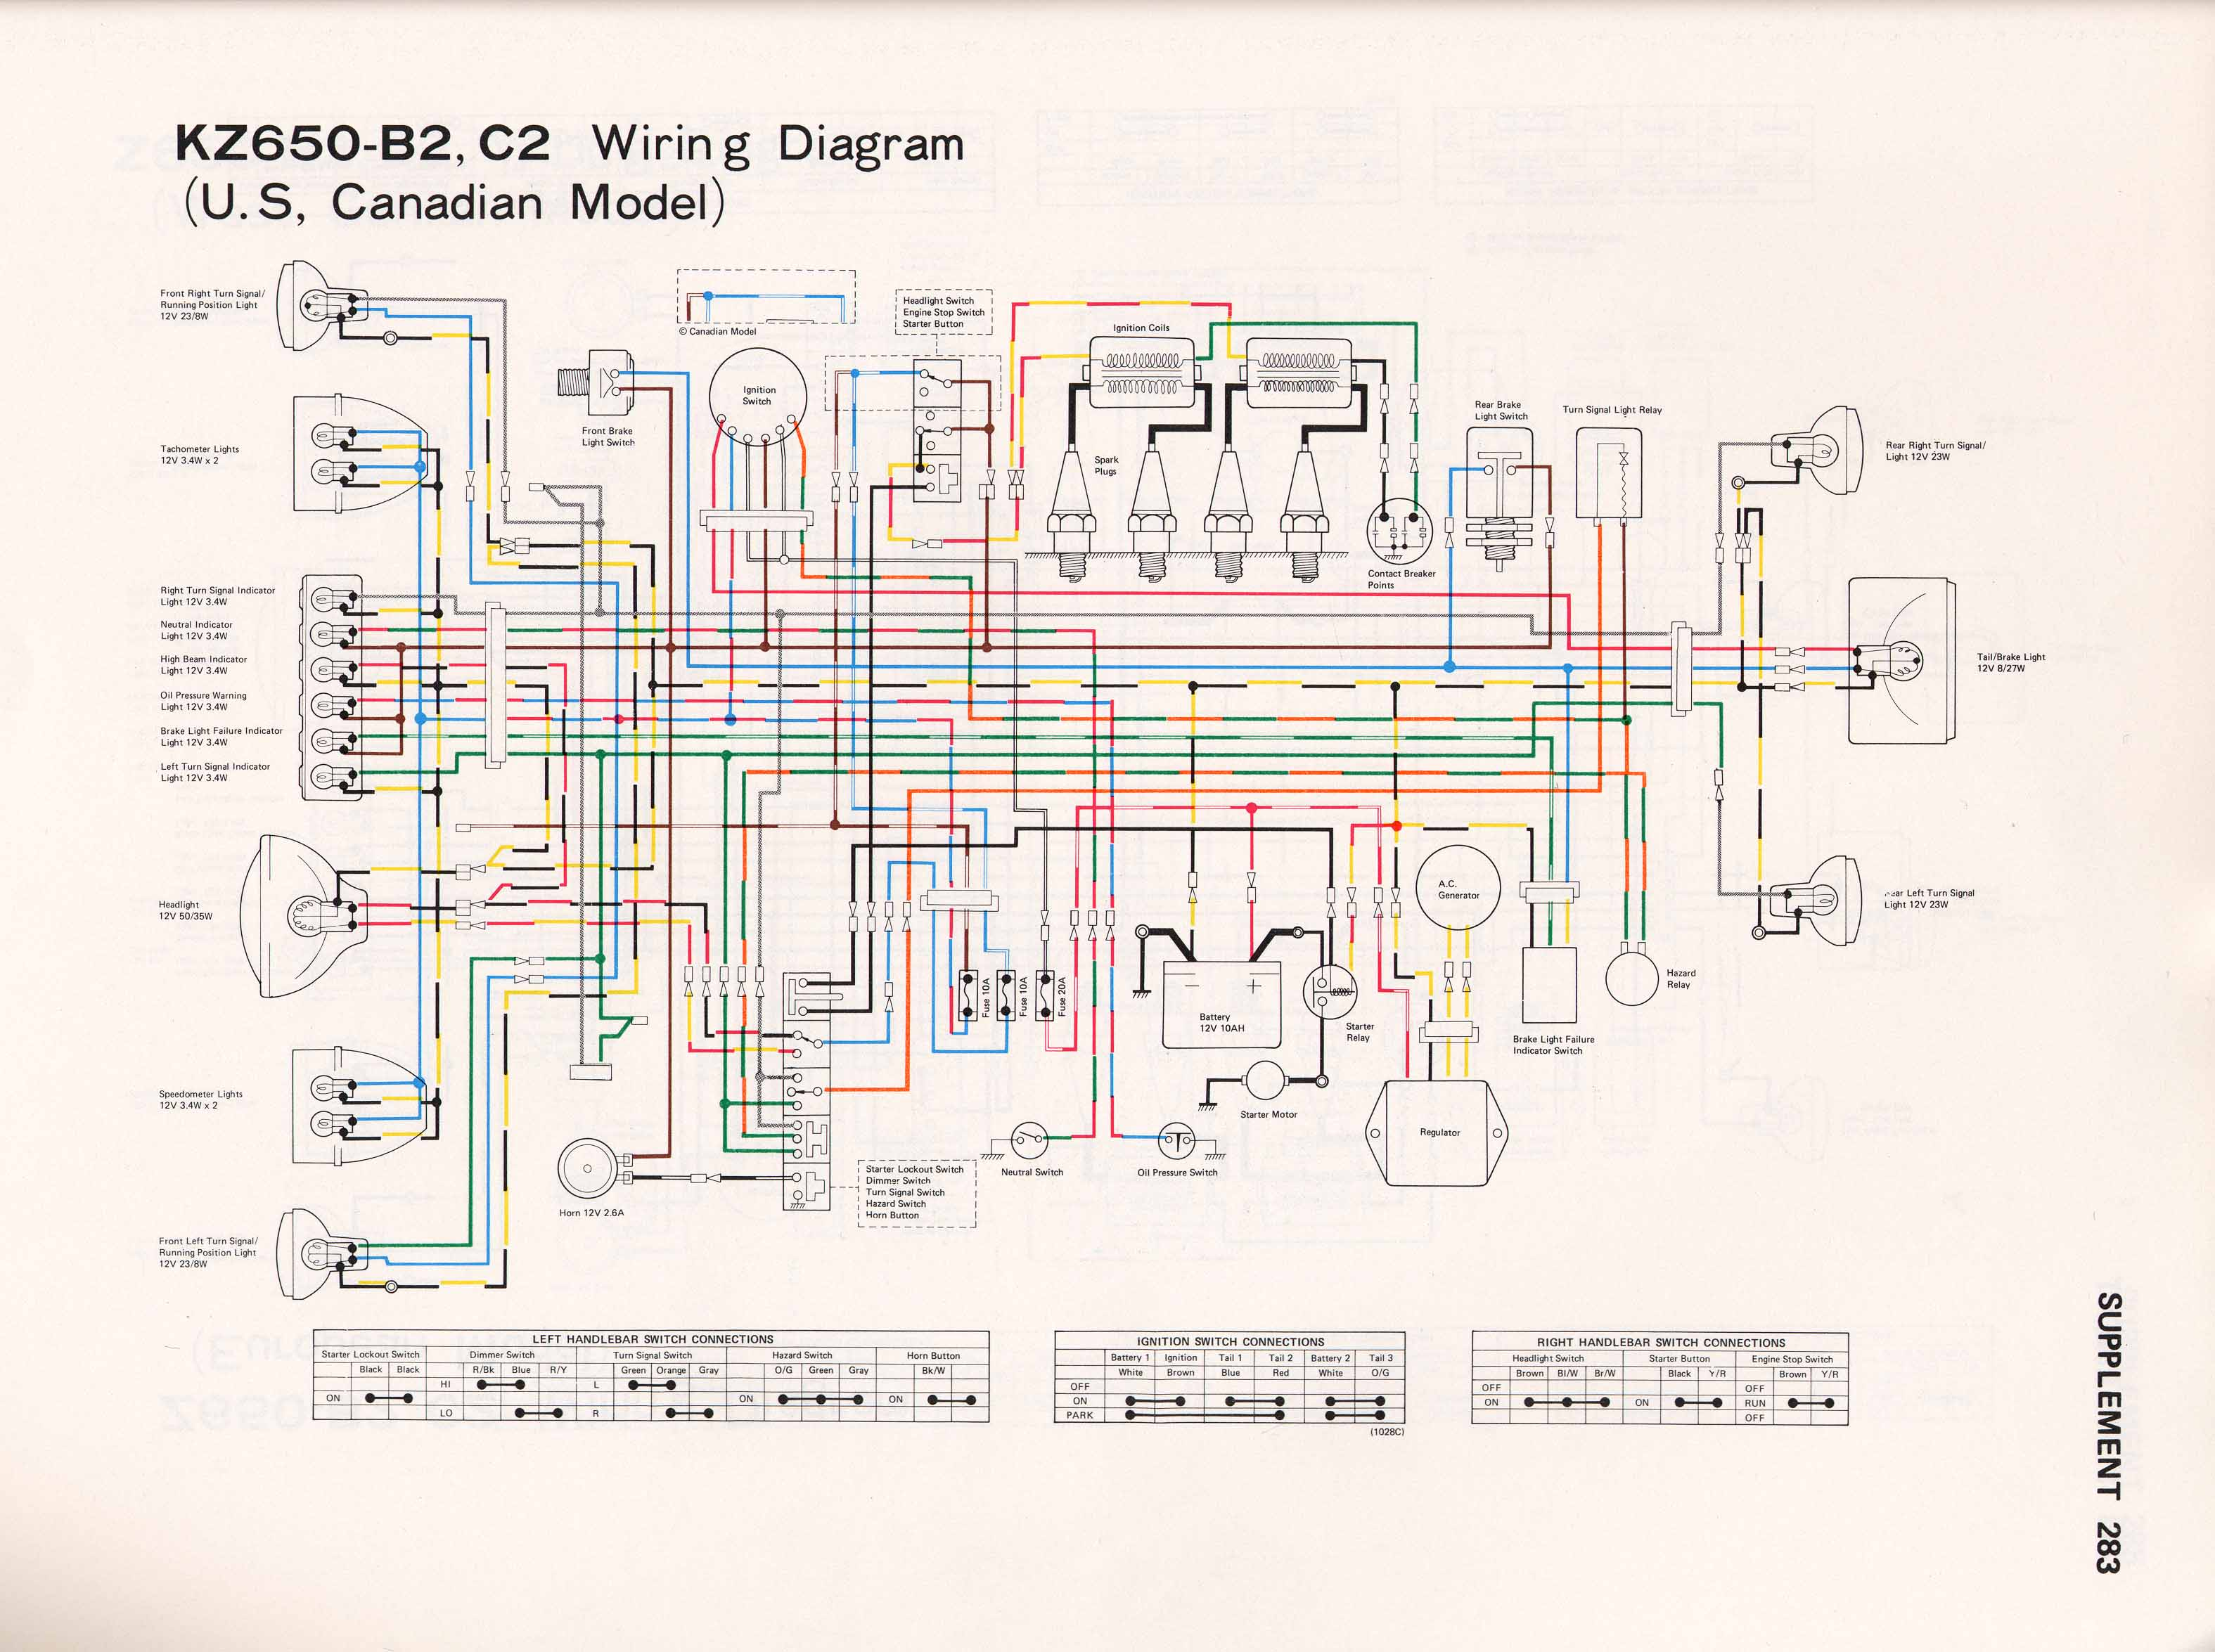 1982 kz650 wiring diagram wiring harness and charging issues 78kz650 - kzrider forum ... 80 kz650 wiring diagram